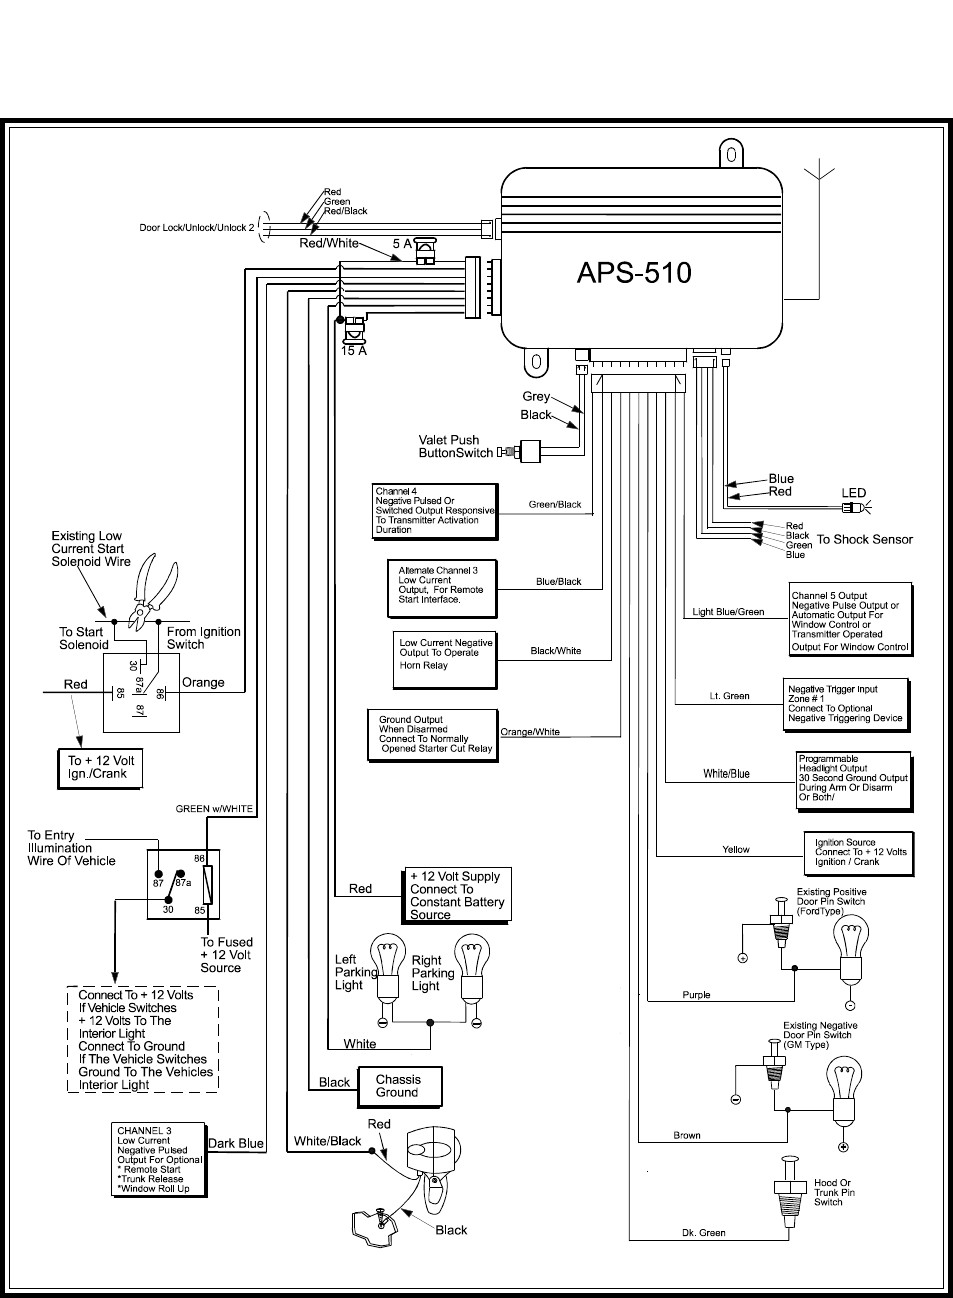 ... Viper 300 Esp Alarm Wiring Diagram Images Gallery